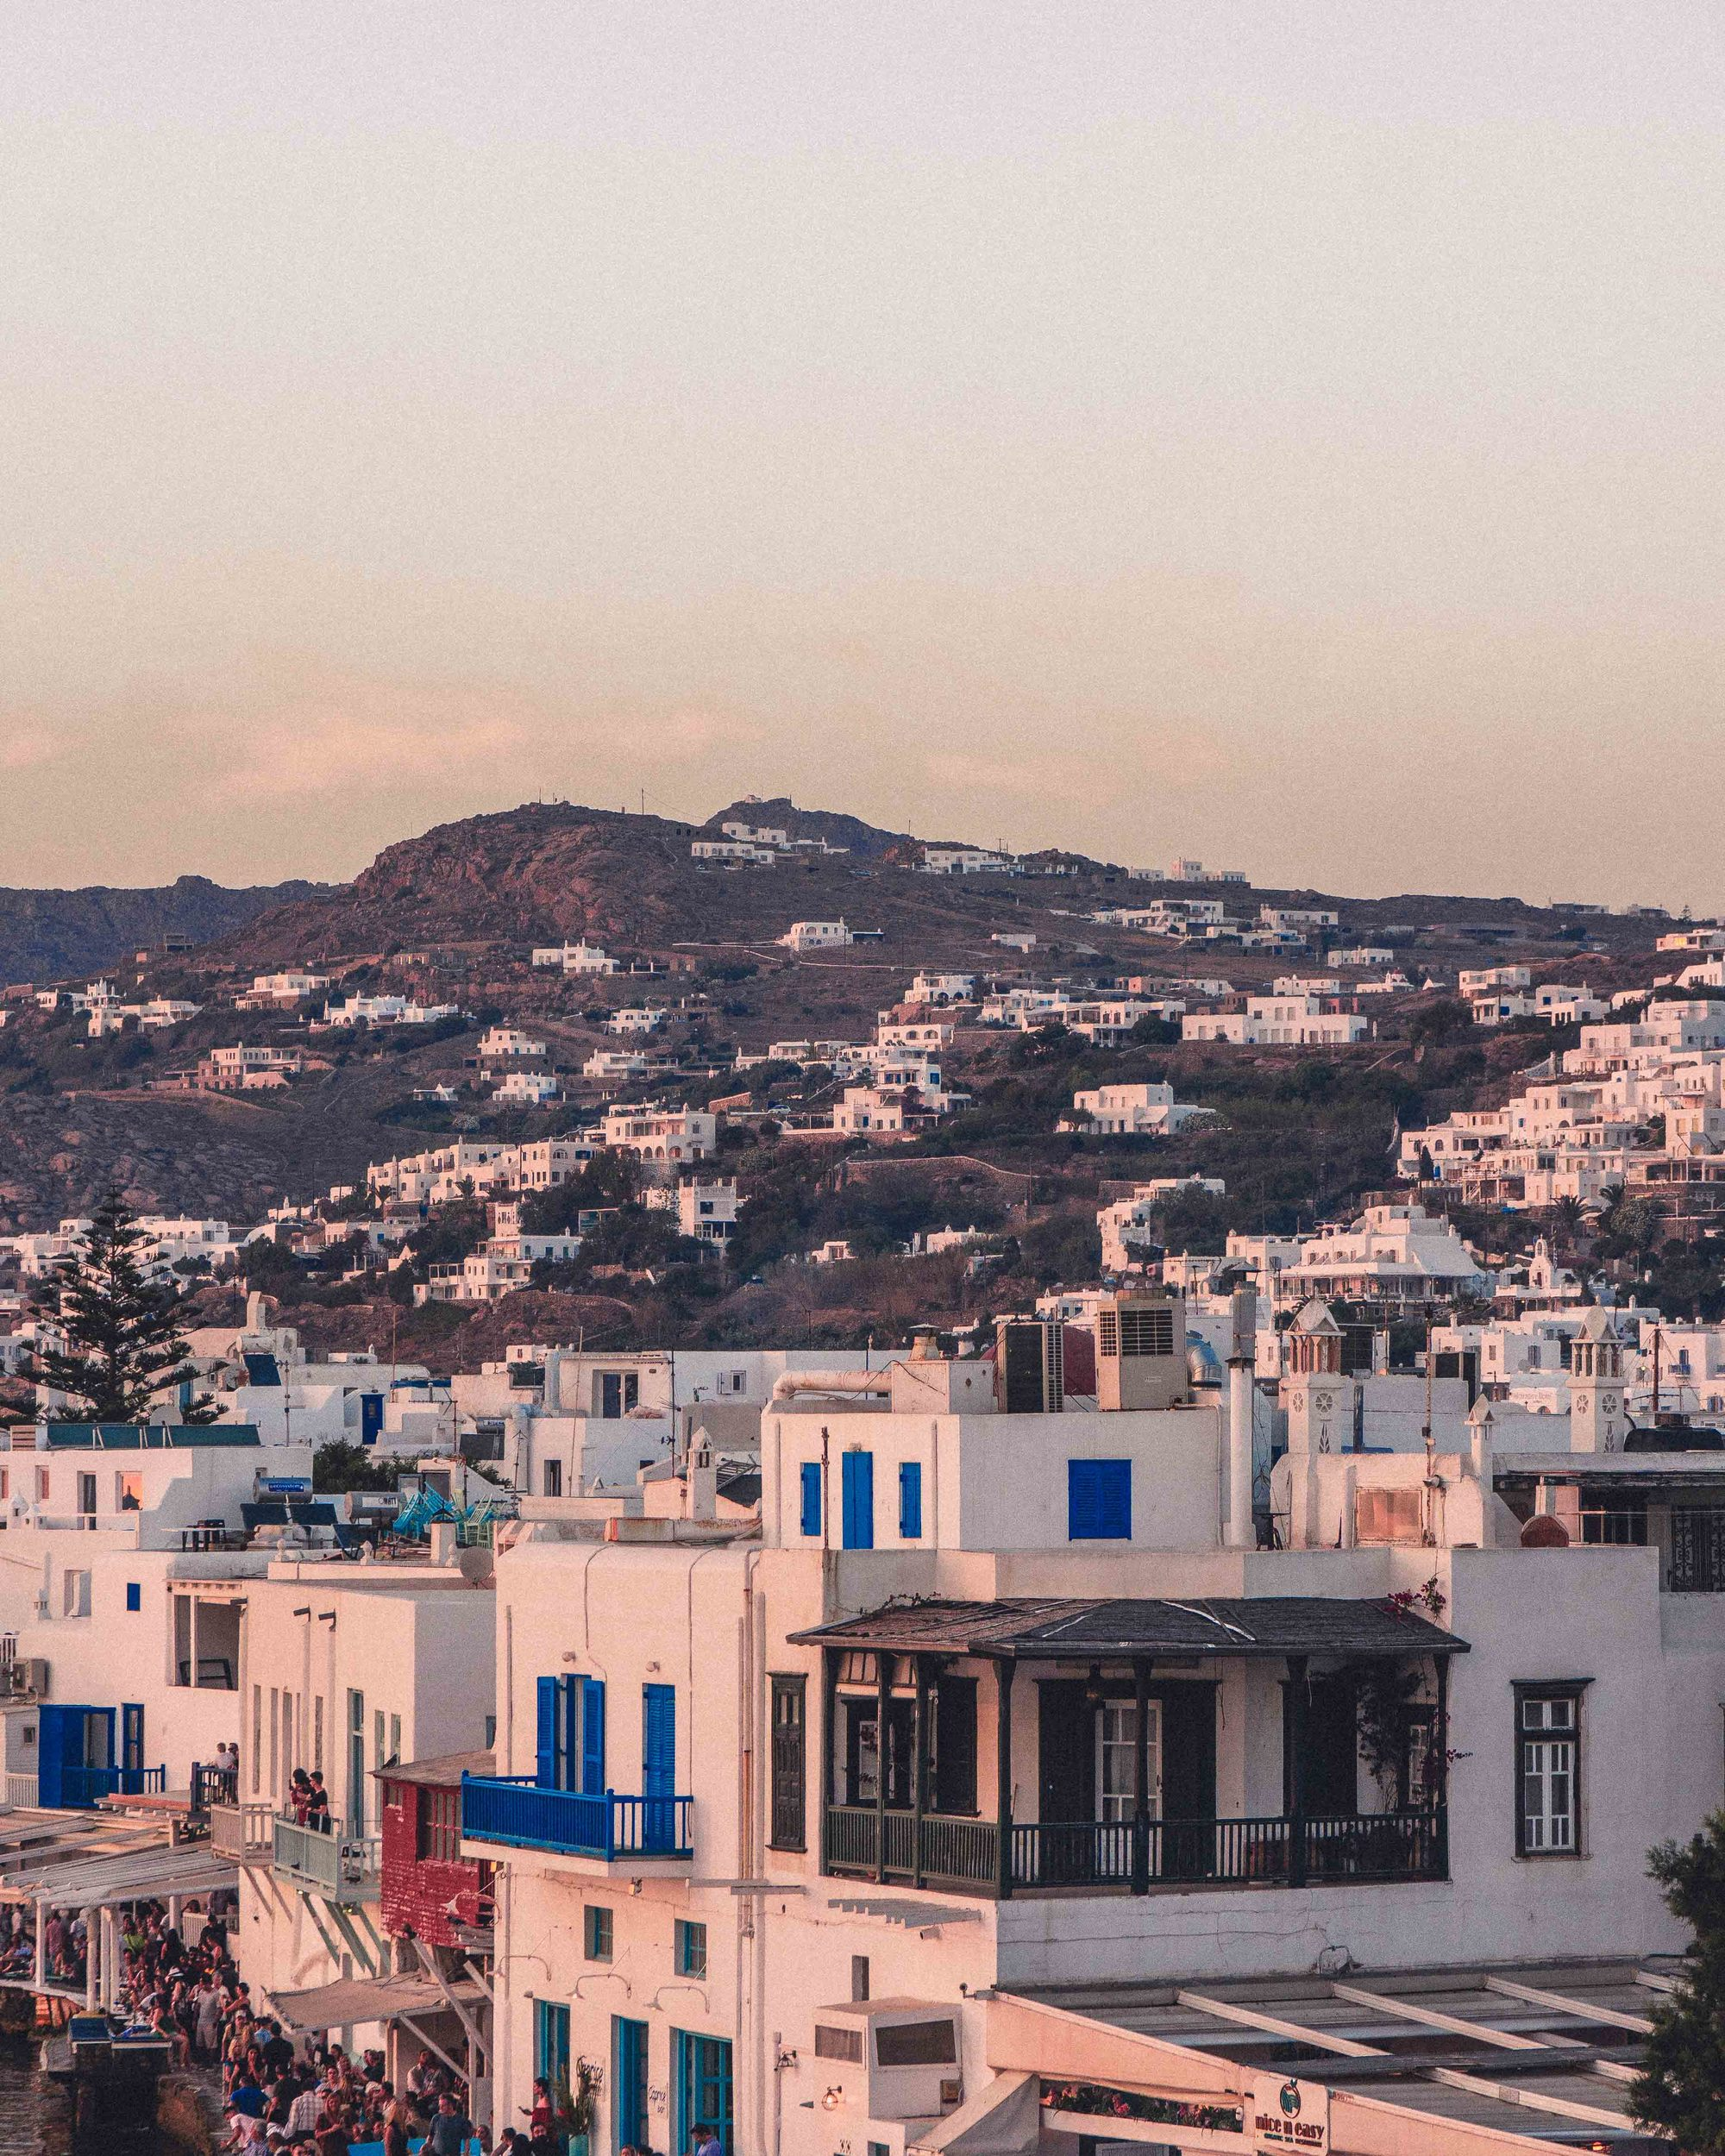 Here's your ultimate guide for how to spend one magical day in Mykonos, a sample travel itinerary for day trips from Mykonos and things to do on the island in Greece